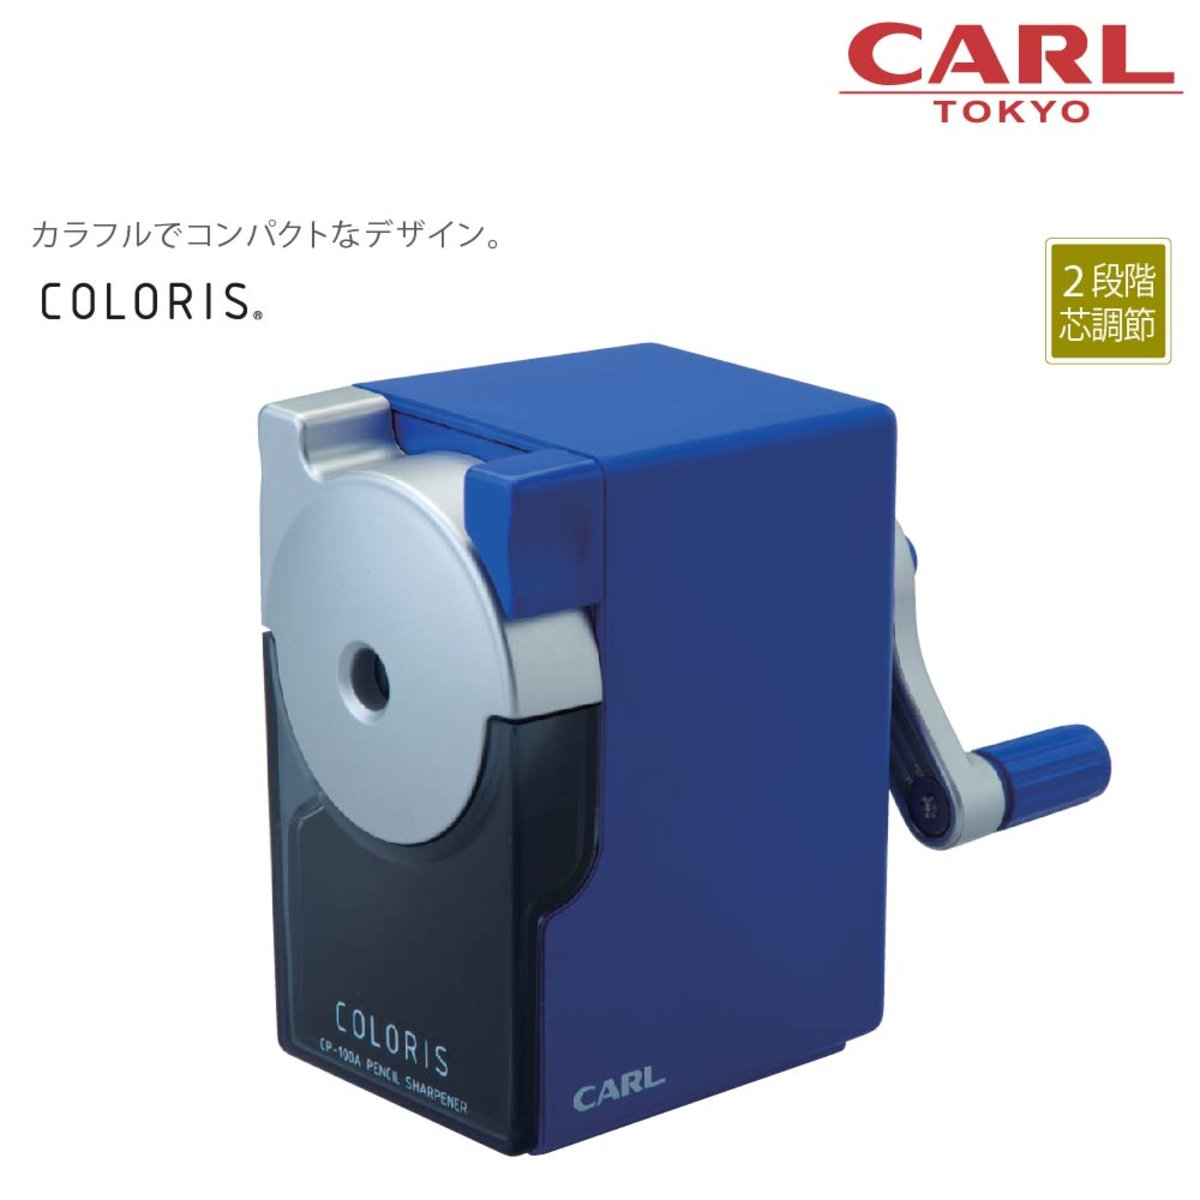 Pencil sharpener CP-100A/Blue